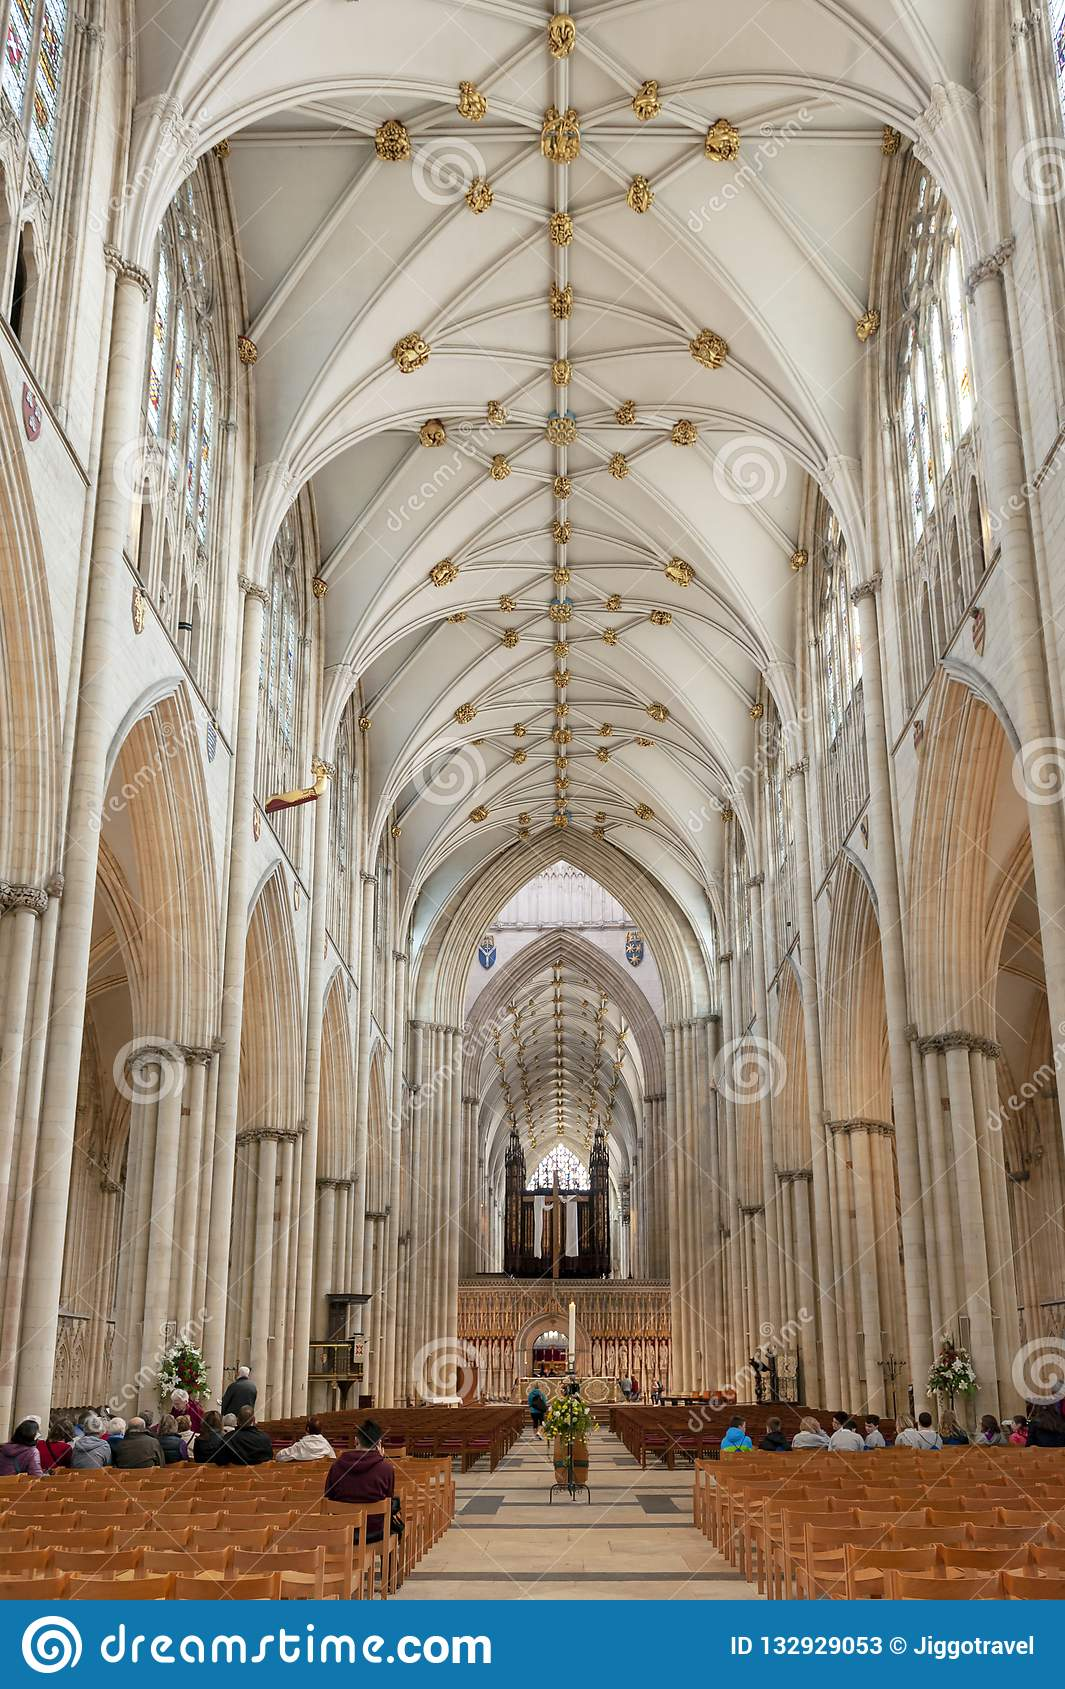 Magnificent gothic Nave inside York Minster, historic cathedral built in English  gothic architectural style,